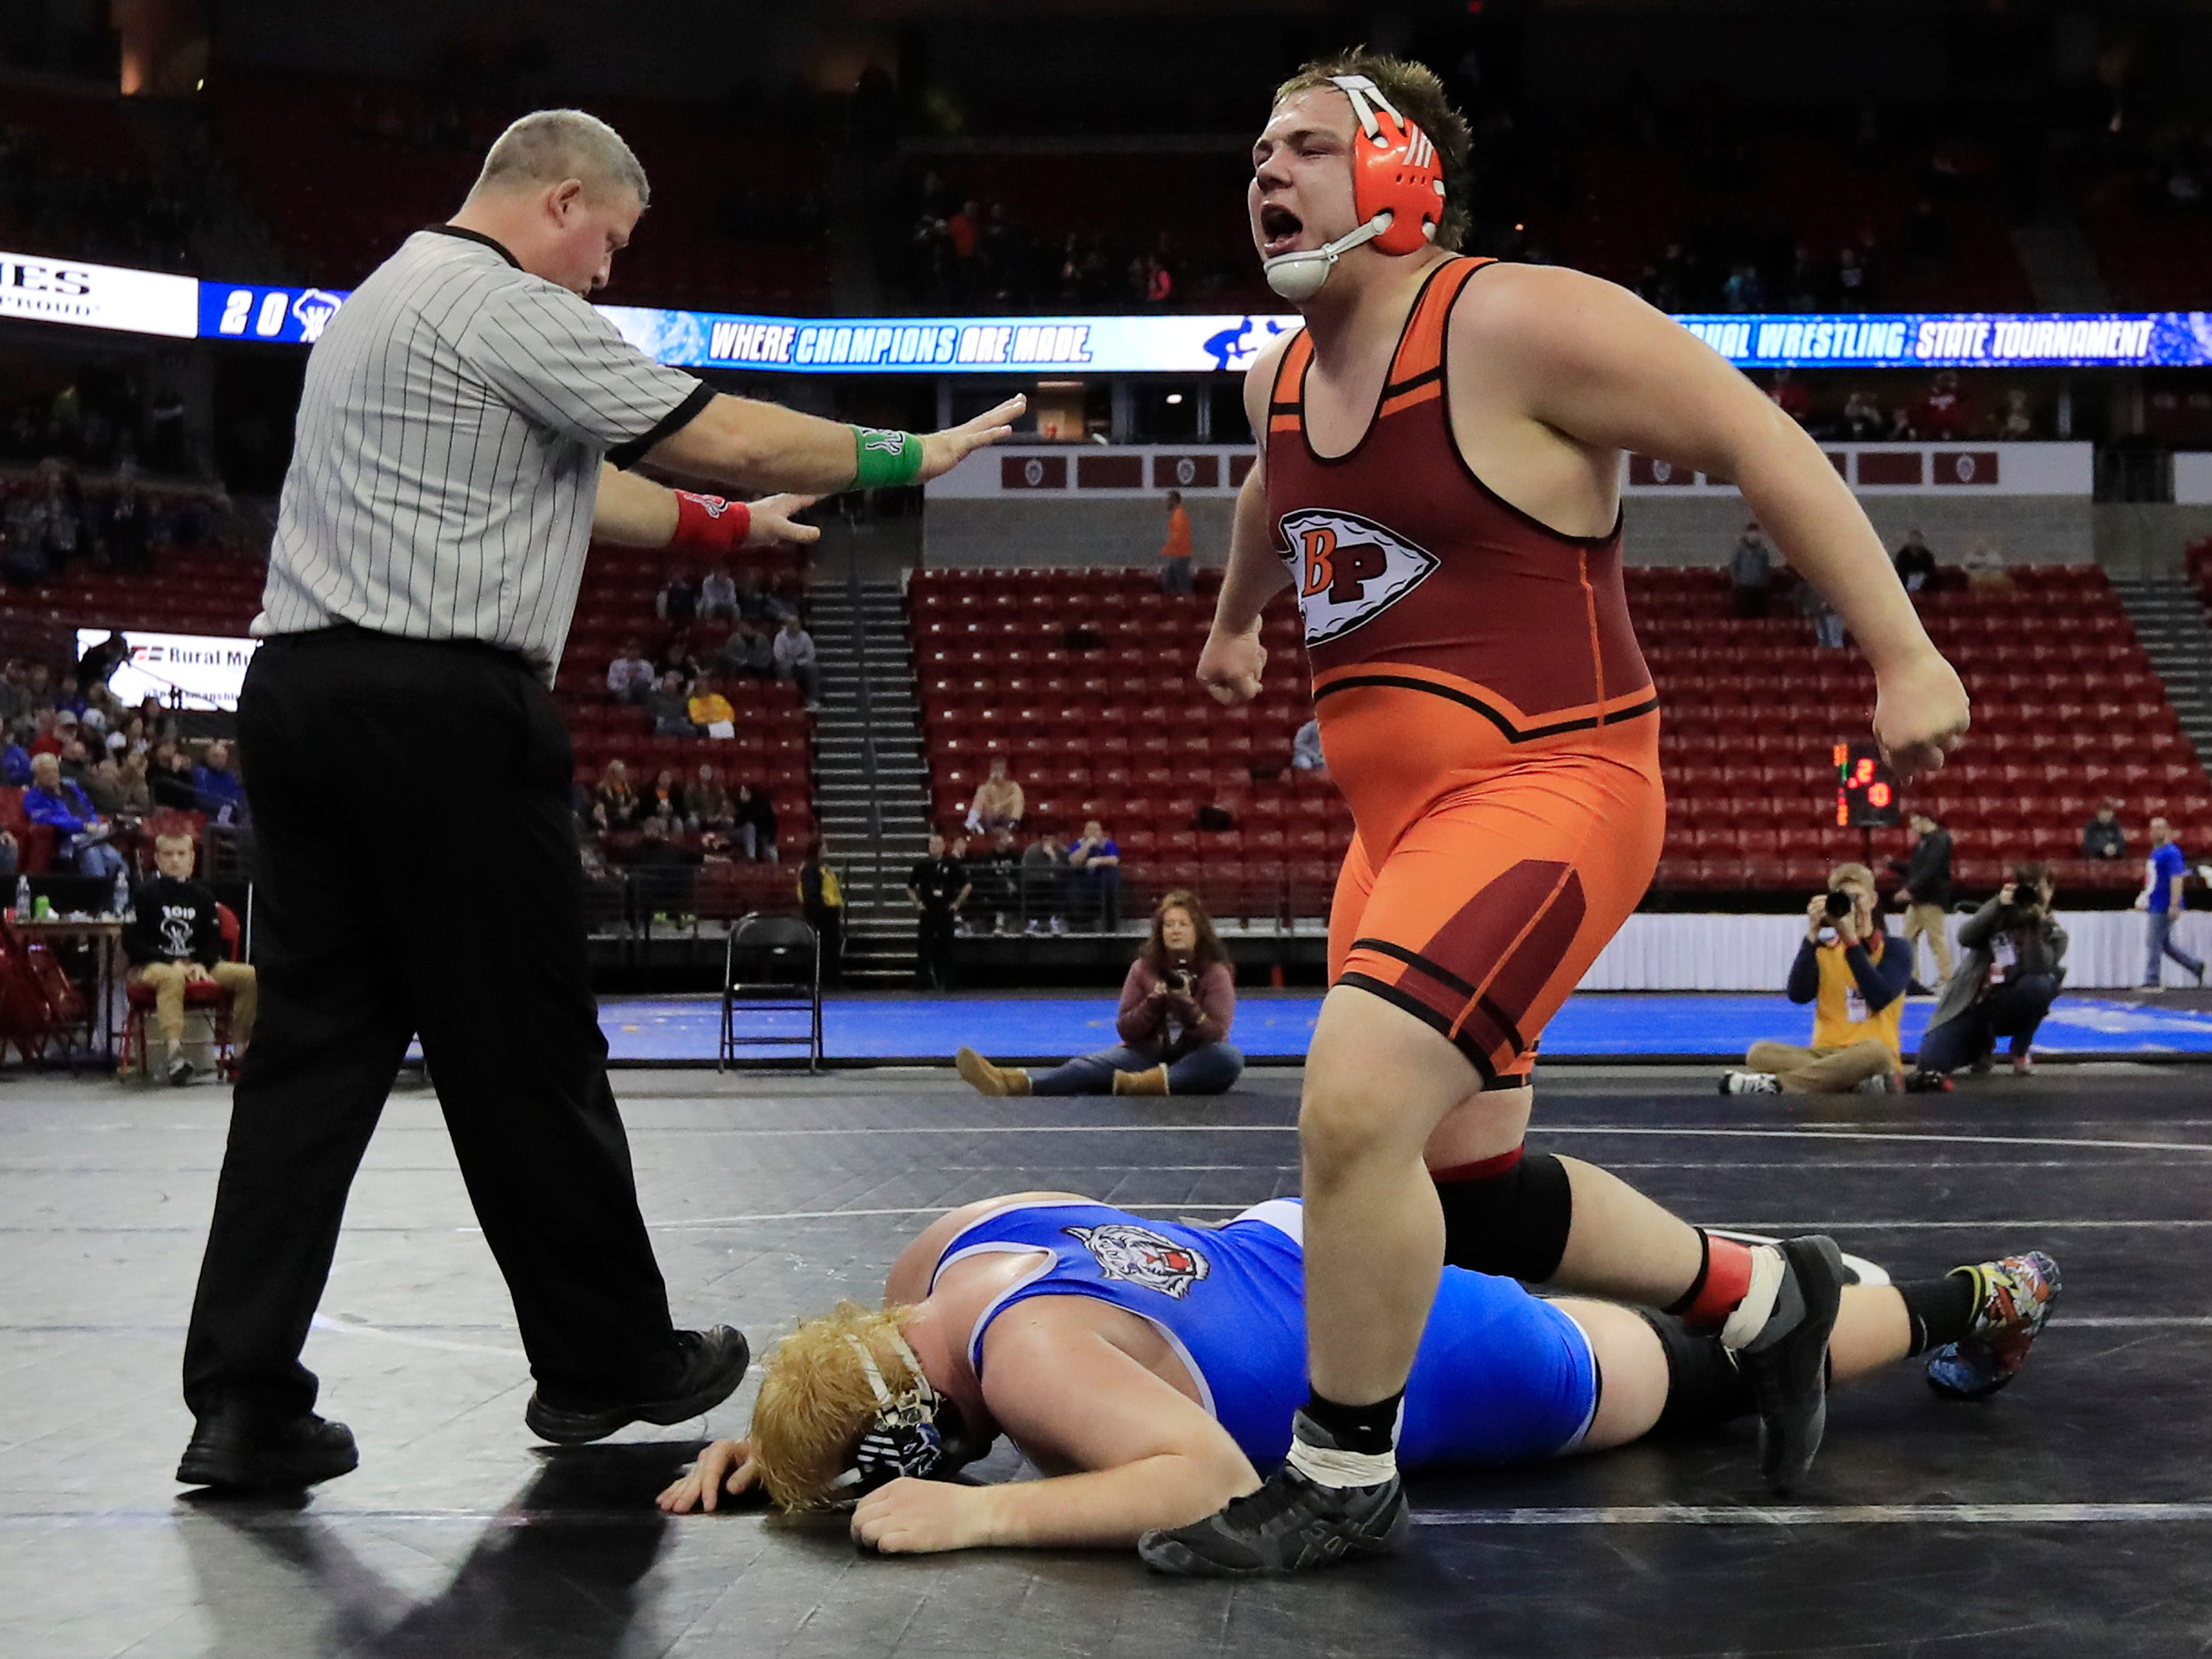 Belmont/Platteville's Michael Douglas reacts after defeating Wrightstown's Ethan Witcpalek in a Division 2 285-pound preliminary match in sudden victory at the WIAA state individual wrestling tournament at the Kohl Center on Thursday, February 21, 2019 in Madison, Wis.